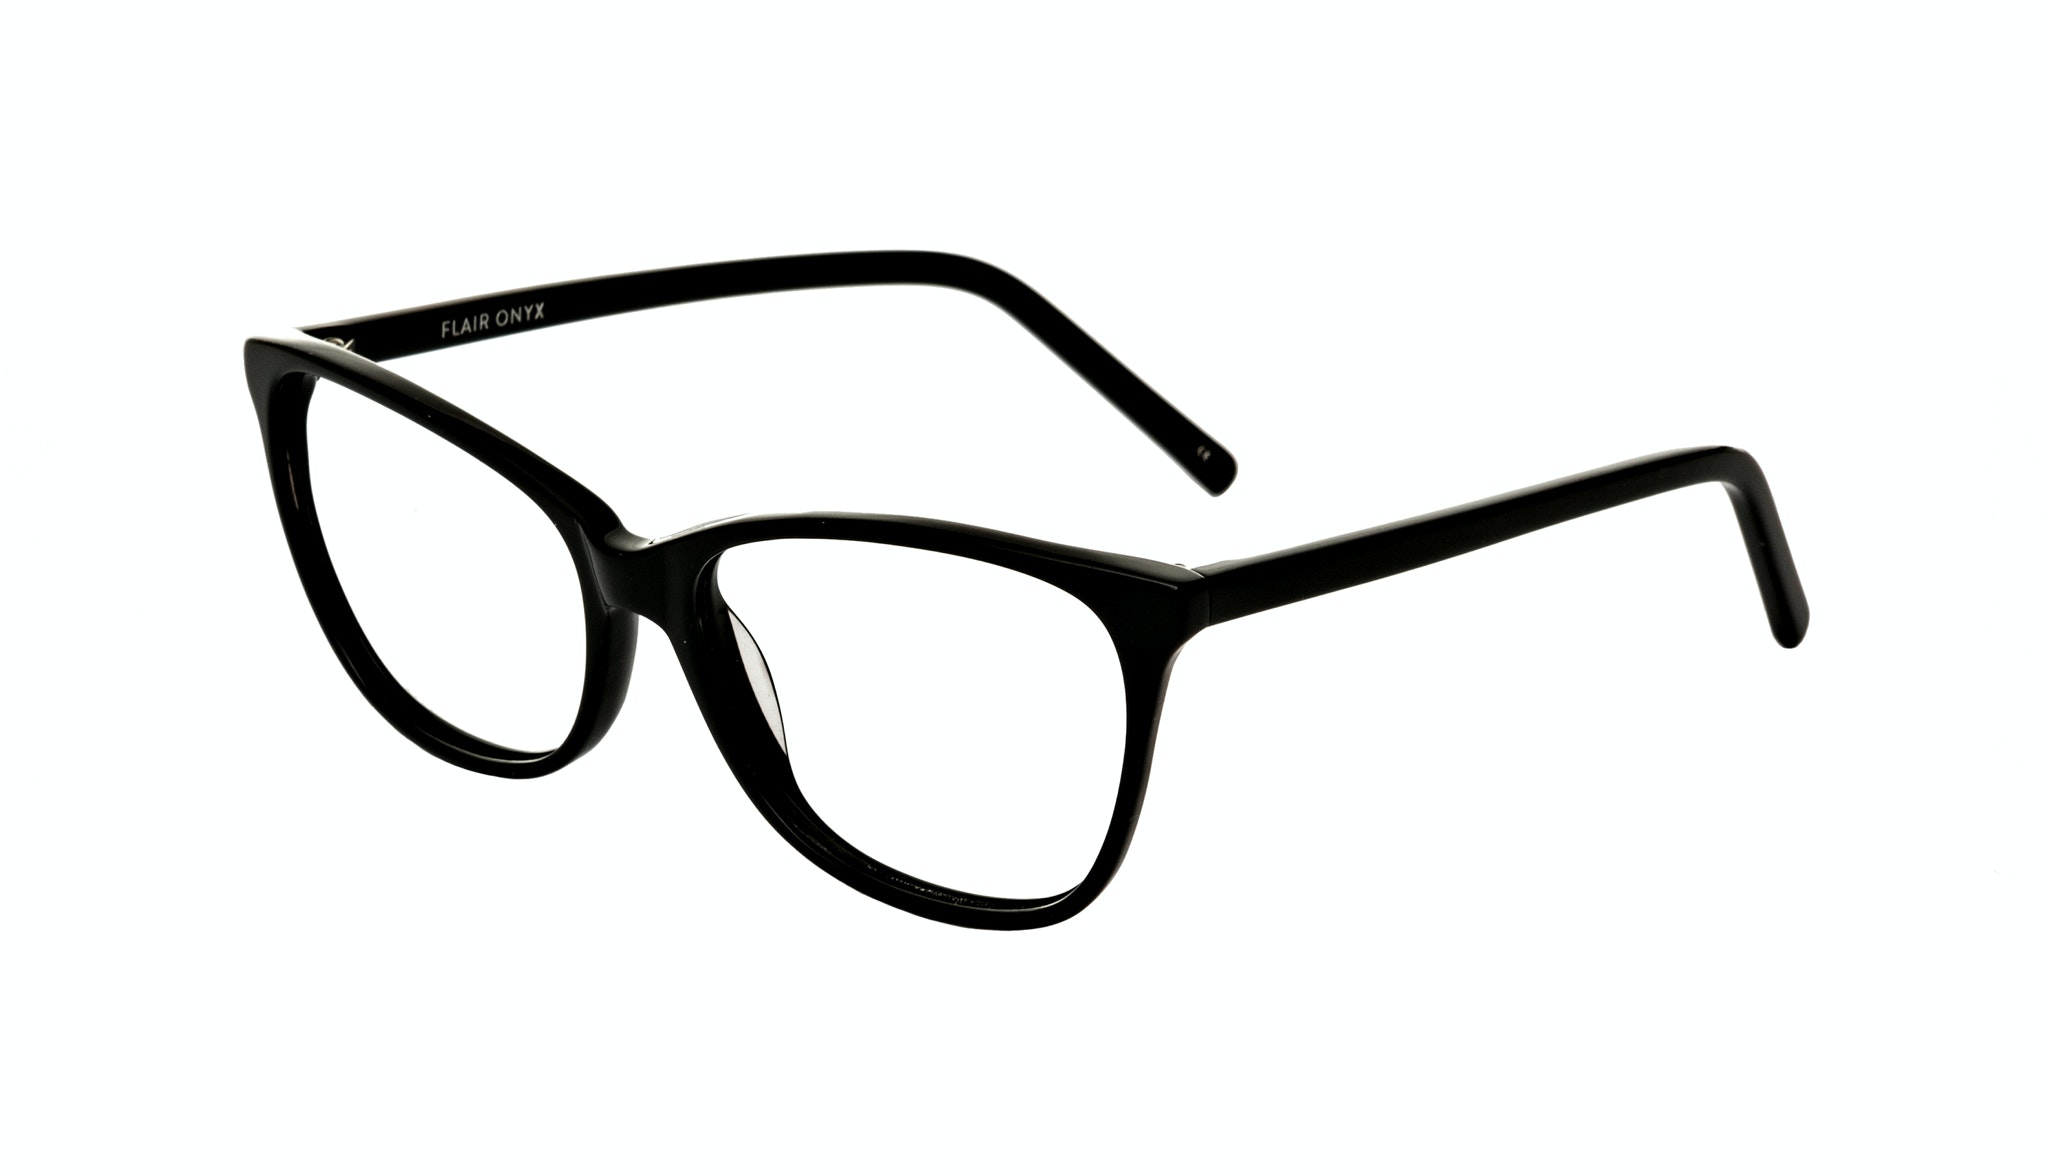 Affordable Fashion Glasses Cat Eye Rectangle Eyeglasses Women Flair Onyx Tilt